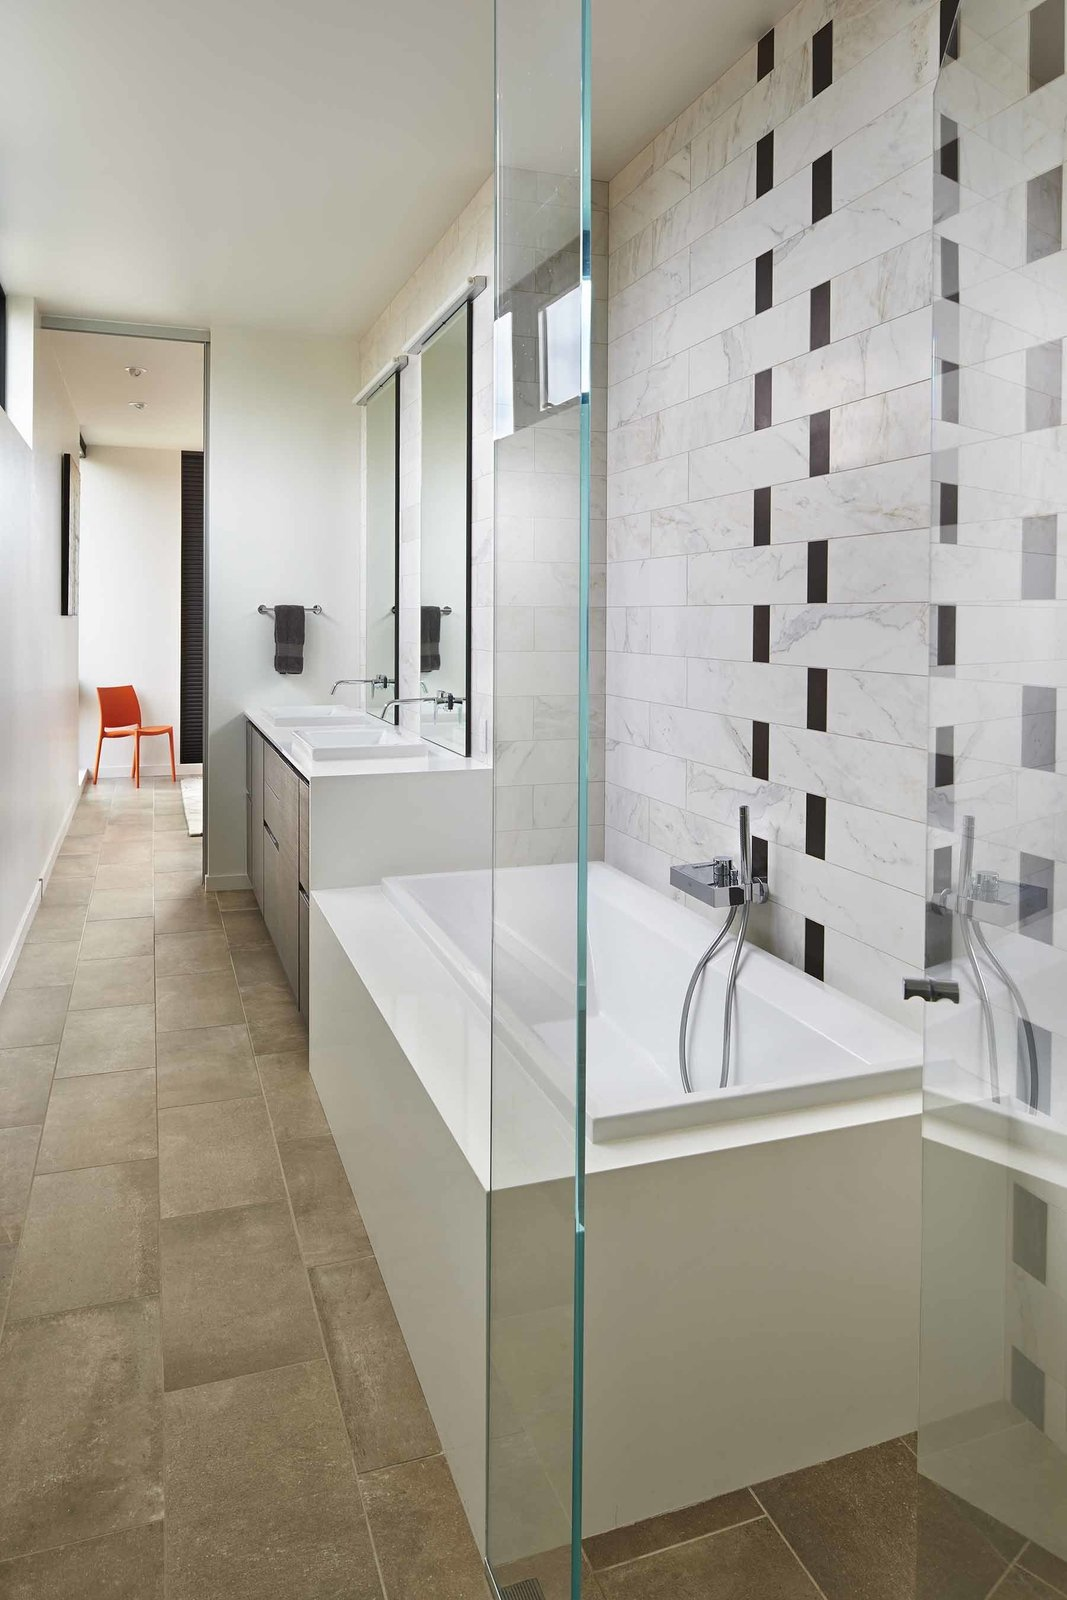 In the master bathroom, a Duravit tub and pair of sinks are surrounded by black and white Crossville tile.  A Light-Filled Renovation Helps a 1950s Seattle Home Go Green by Tiffany Jow